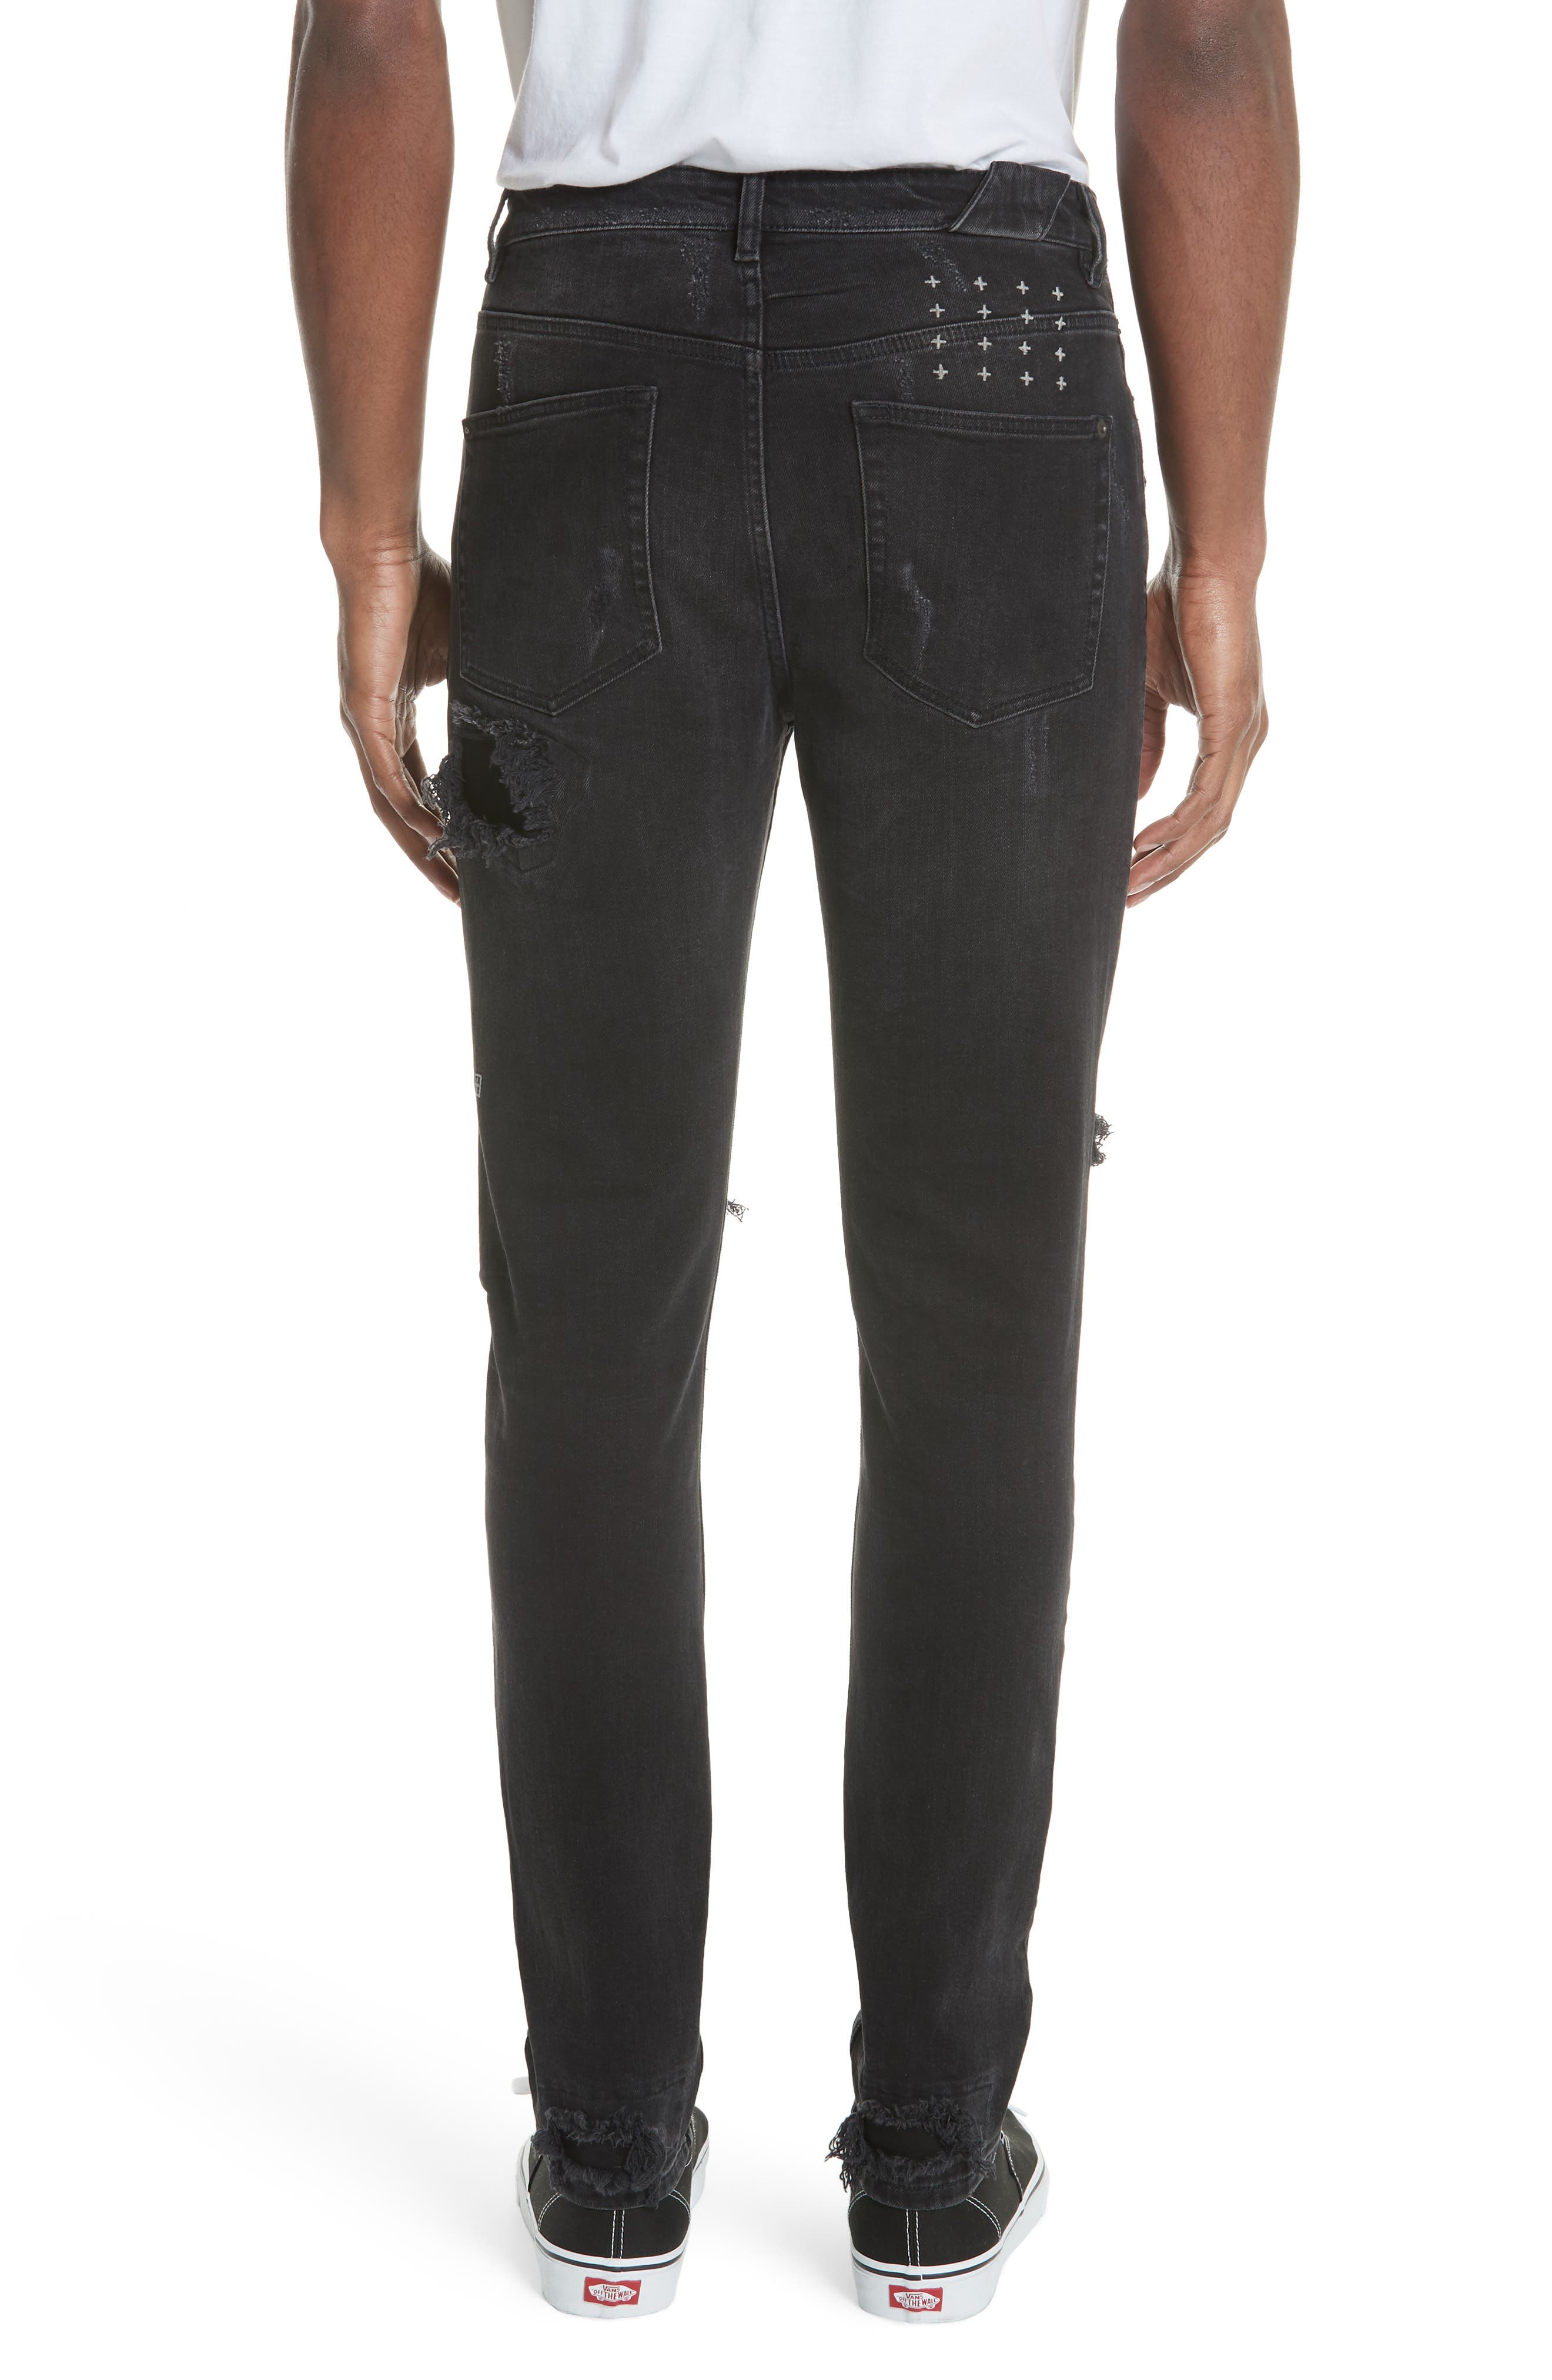 Chitch Boneyard Skinny Fit Jeans,                             Alternate thumbnail 3, color,                             BLACK